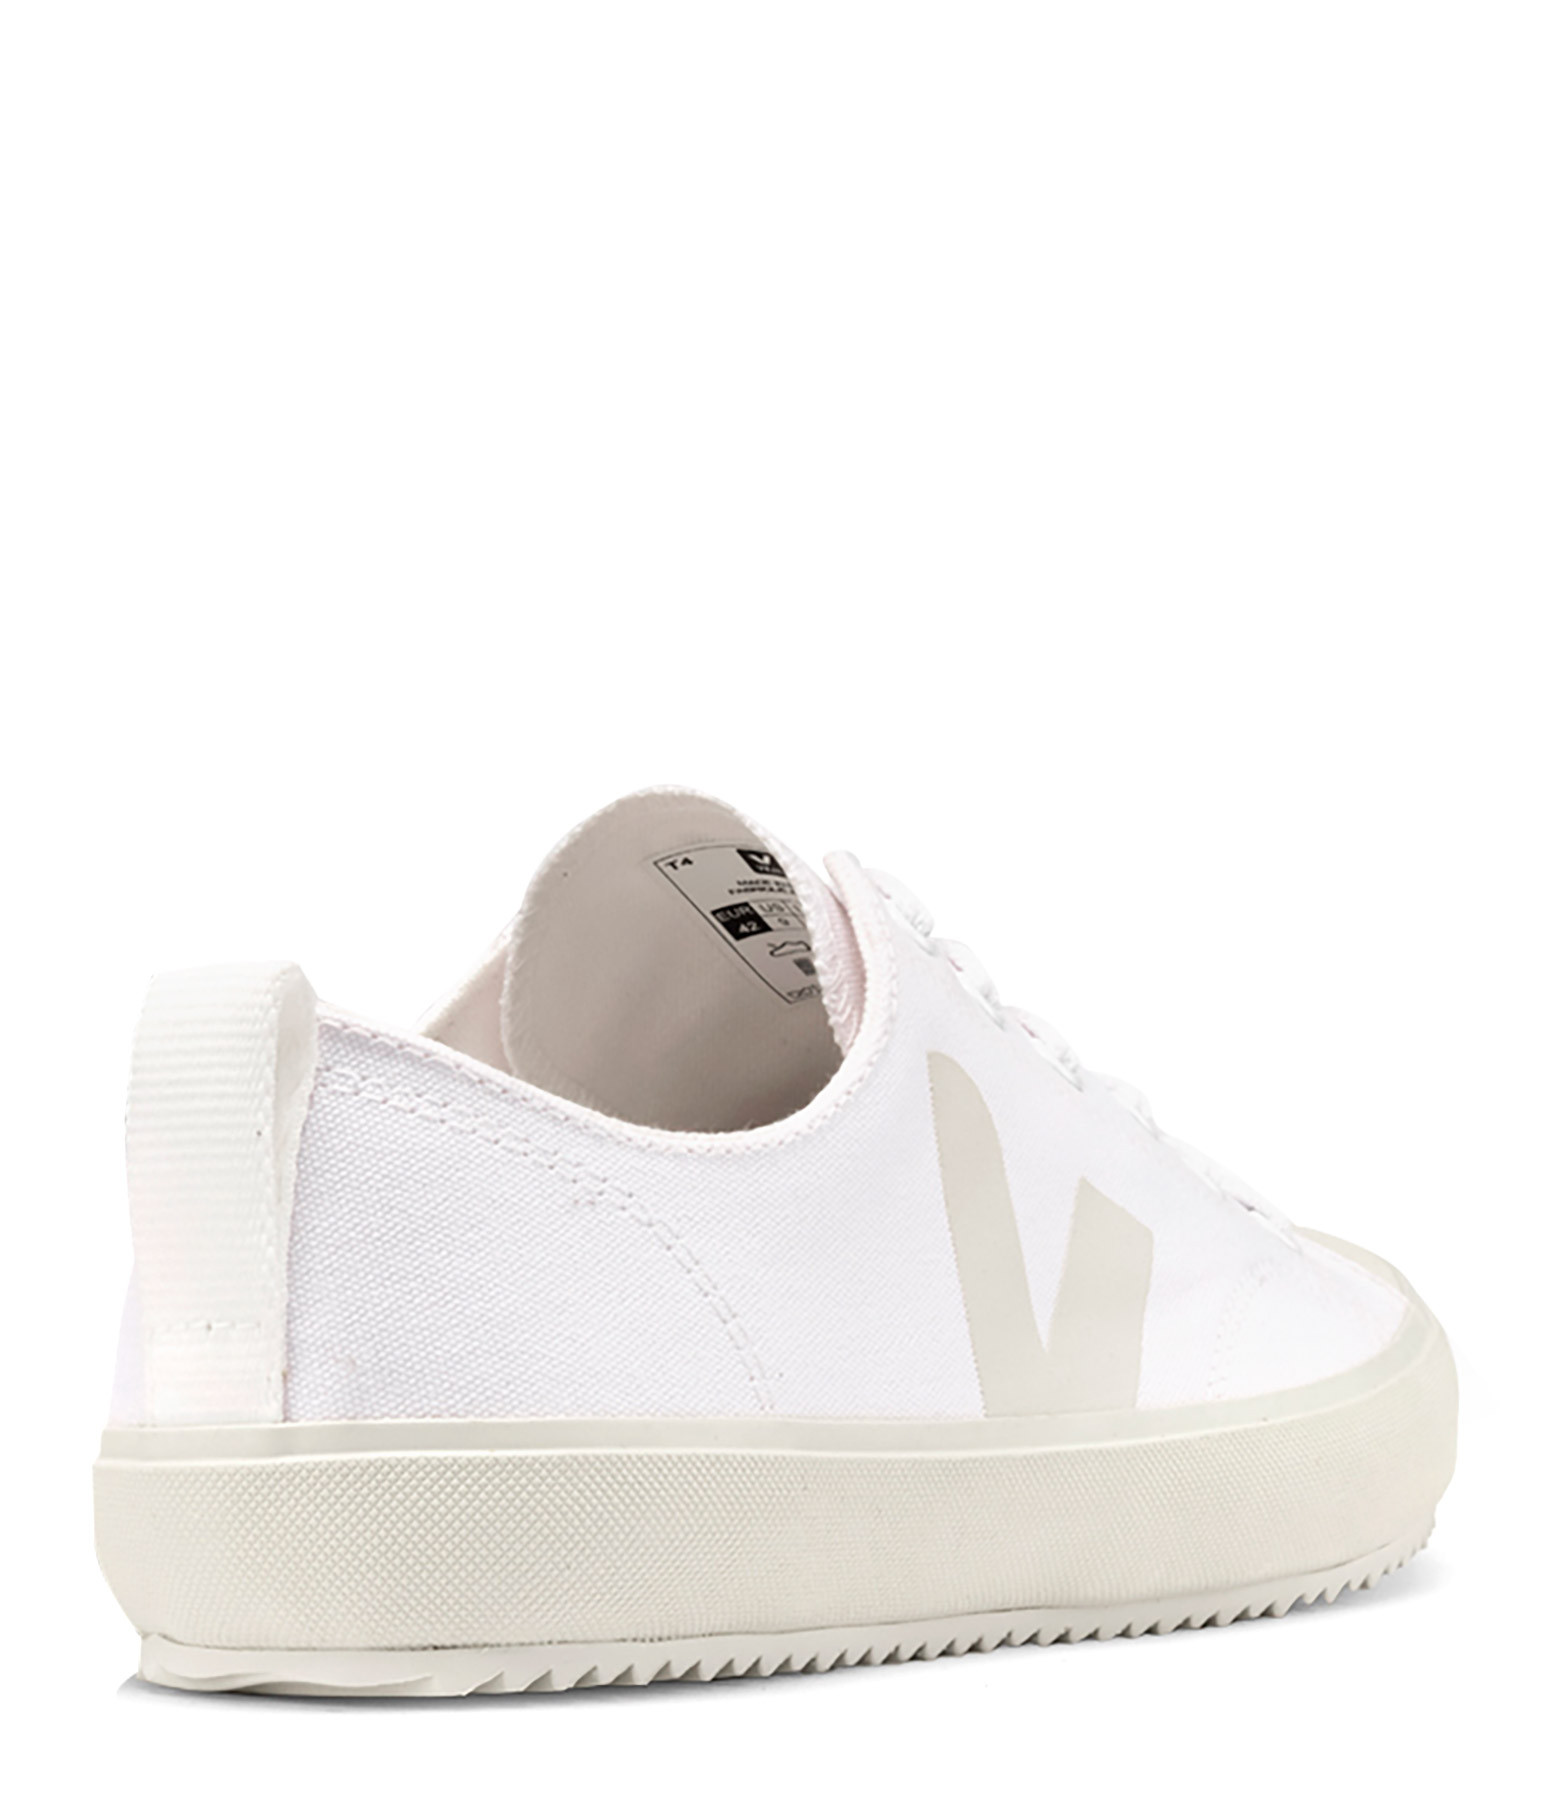 VEJA - Baskets Nova Canvas Blanc Pierre